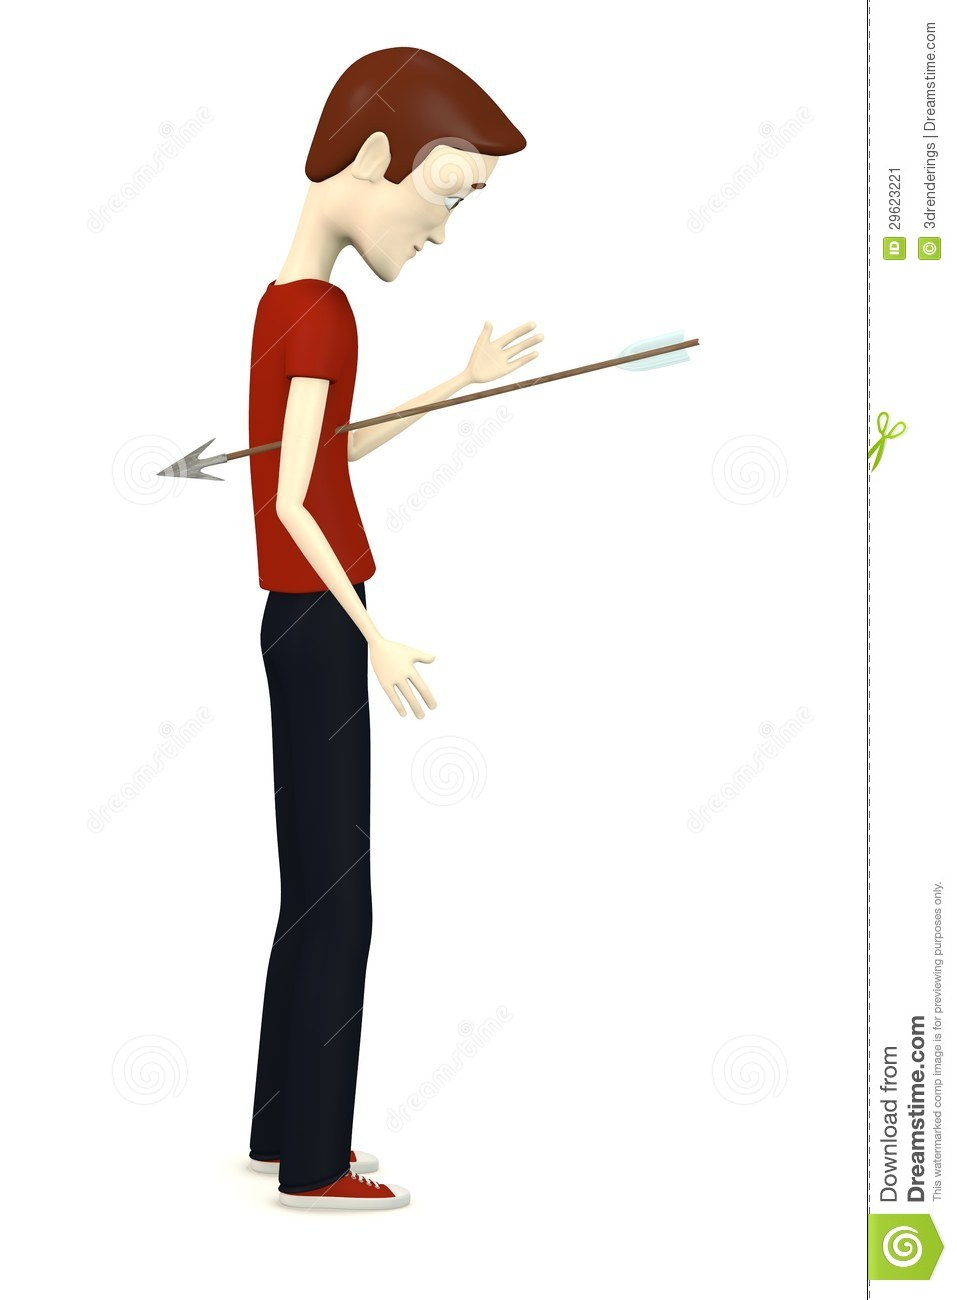 Cartoon Boy With Arrow In Body Stock Image - Image: 29623221